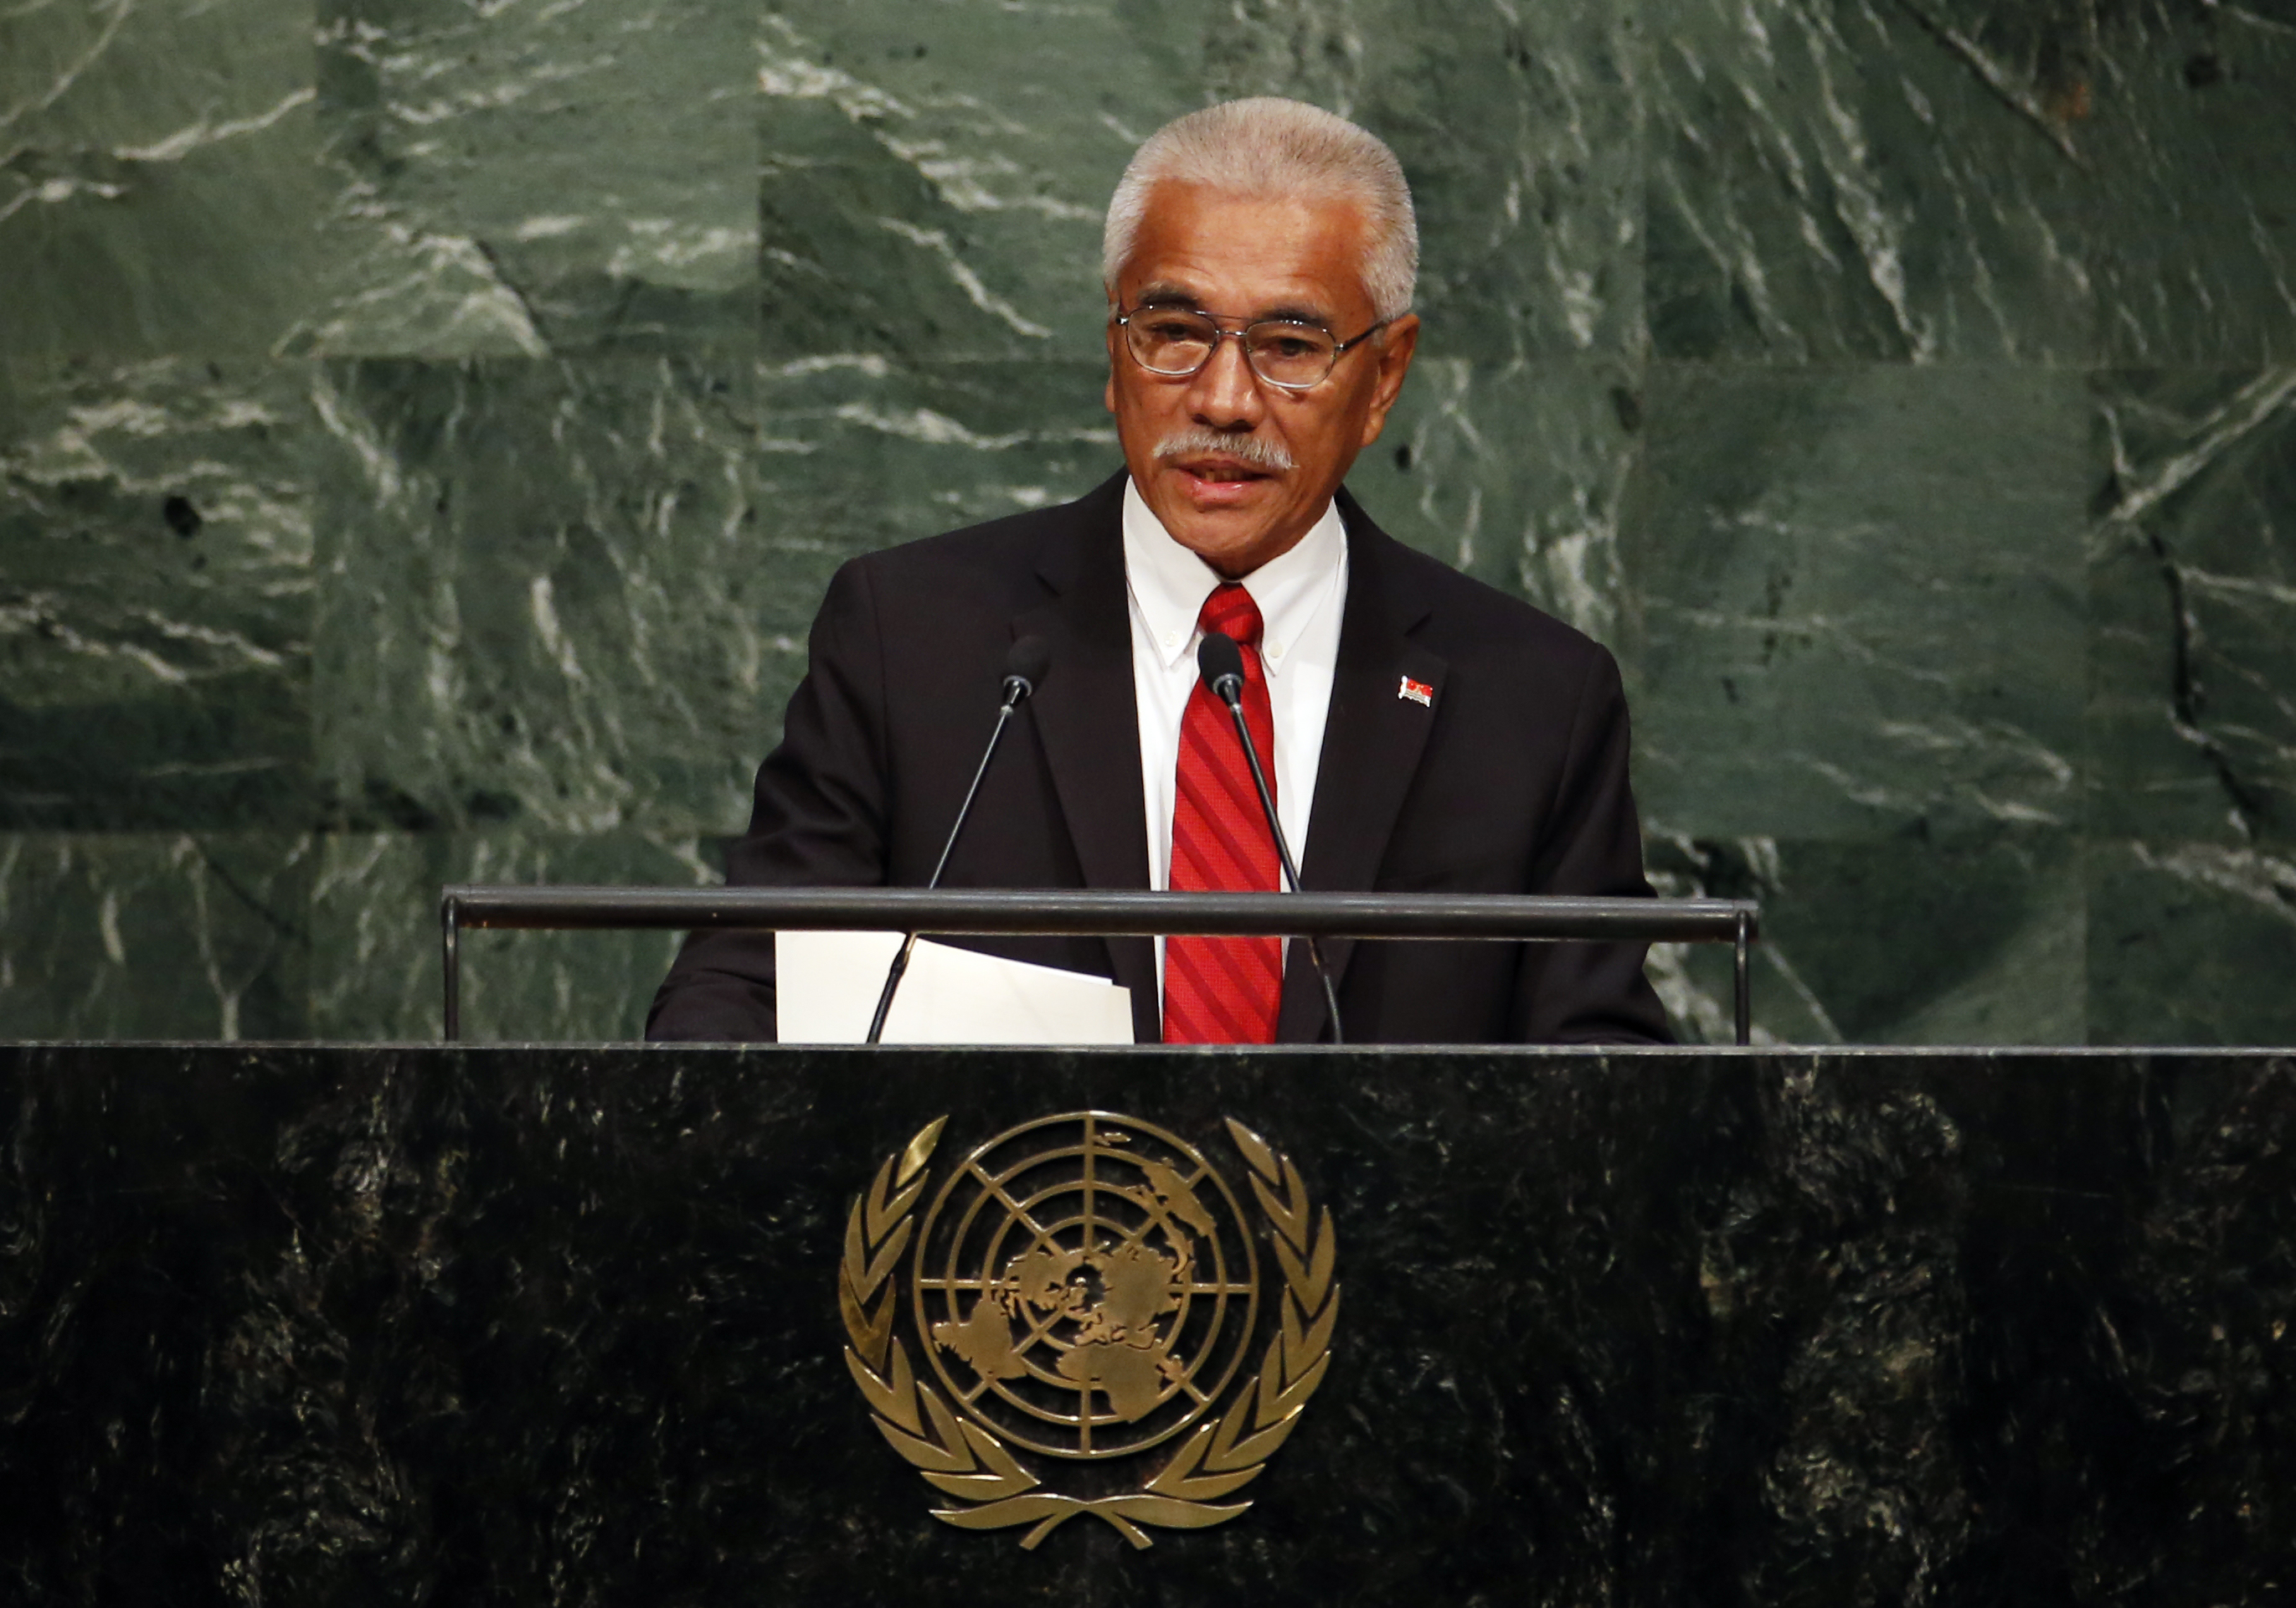 Kiribati's President Anote Tong addresses the United Nations Sustainable Development Summit in New York